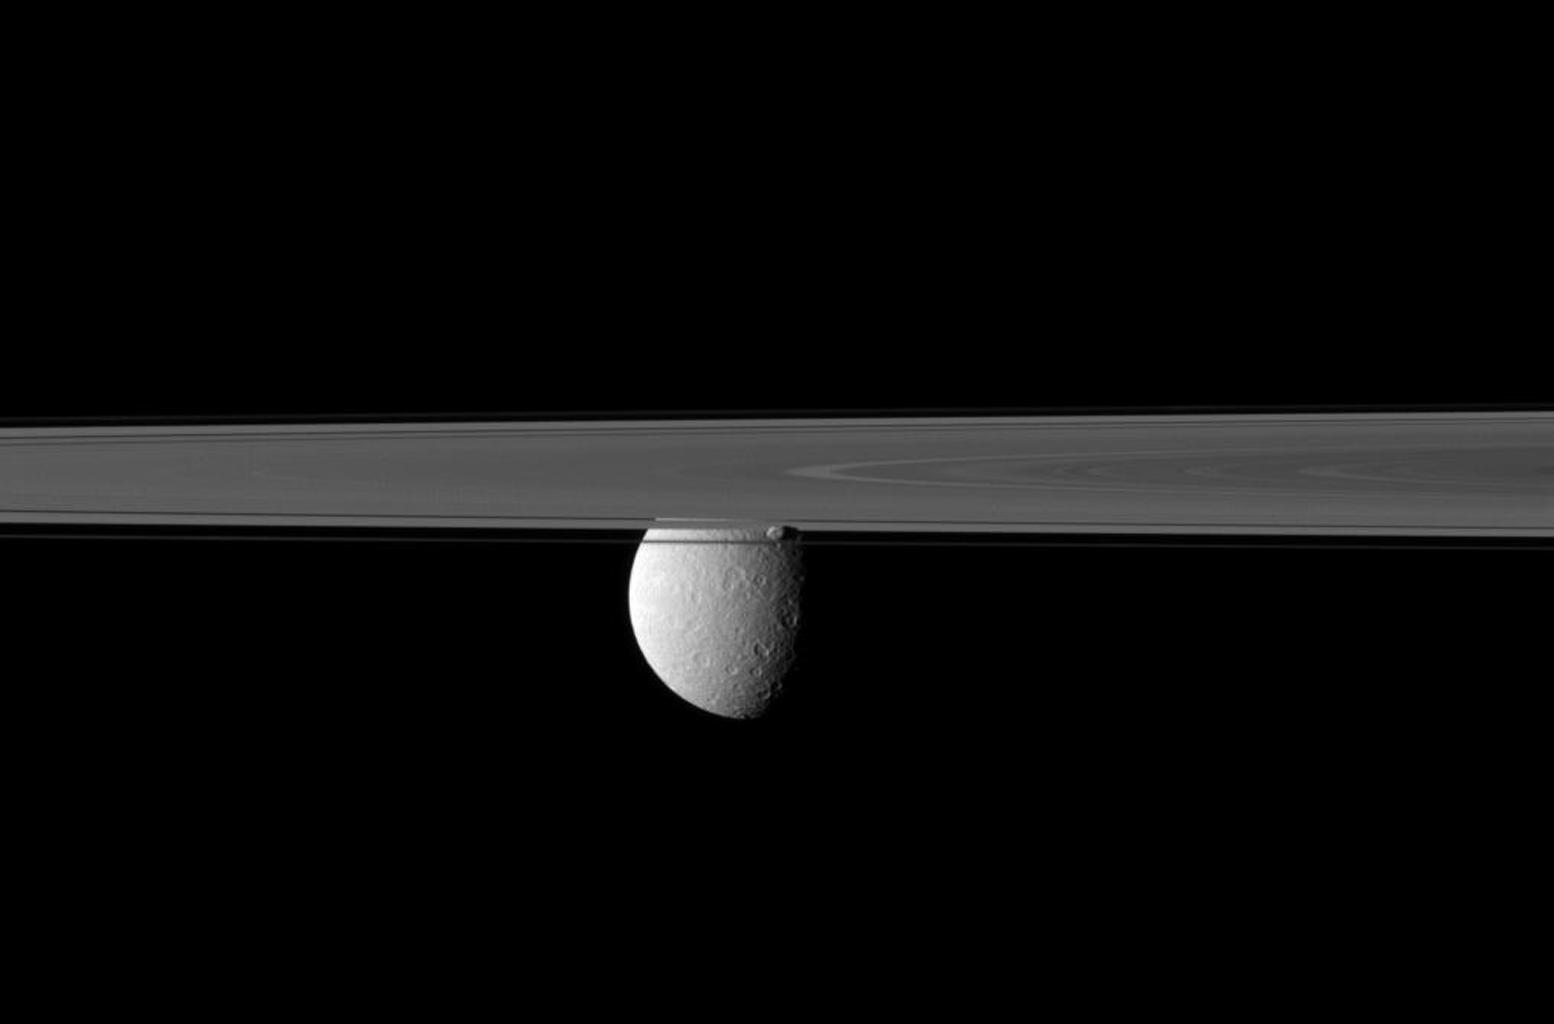 Saturn's rings and small moon Prometheus obscure NASA's Cassini spacecraft's view of the planet's second largest moon, Rhea. Prometheus can be seen just below the center of the image, in front of Rhea.